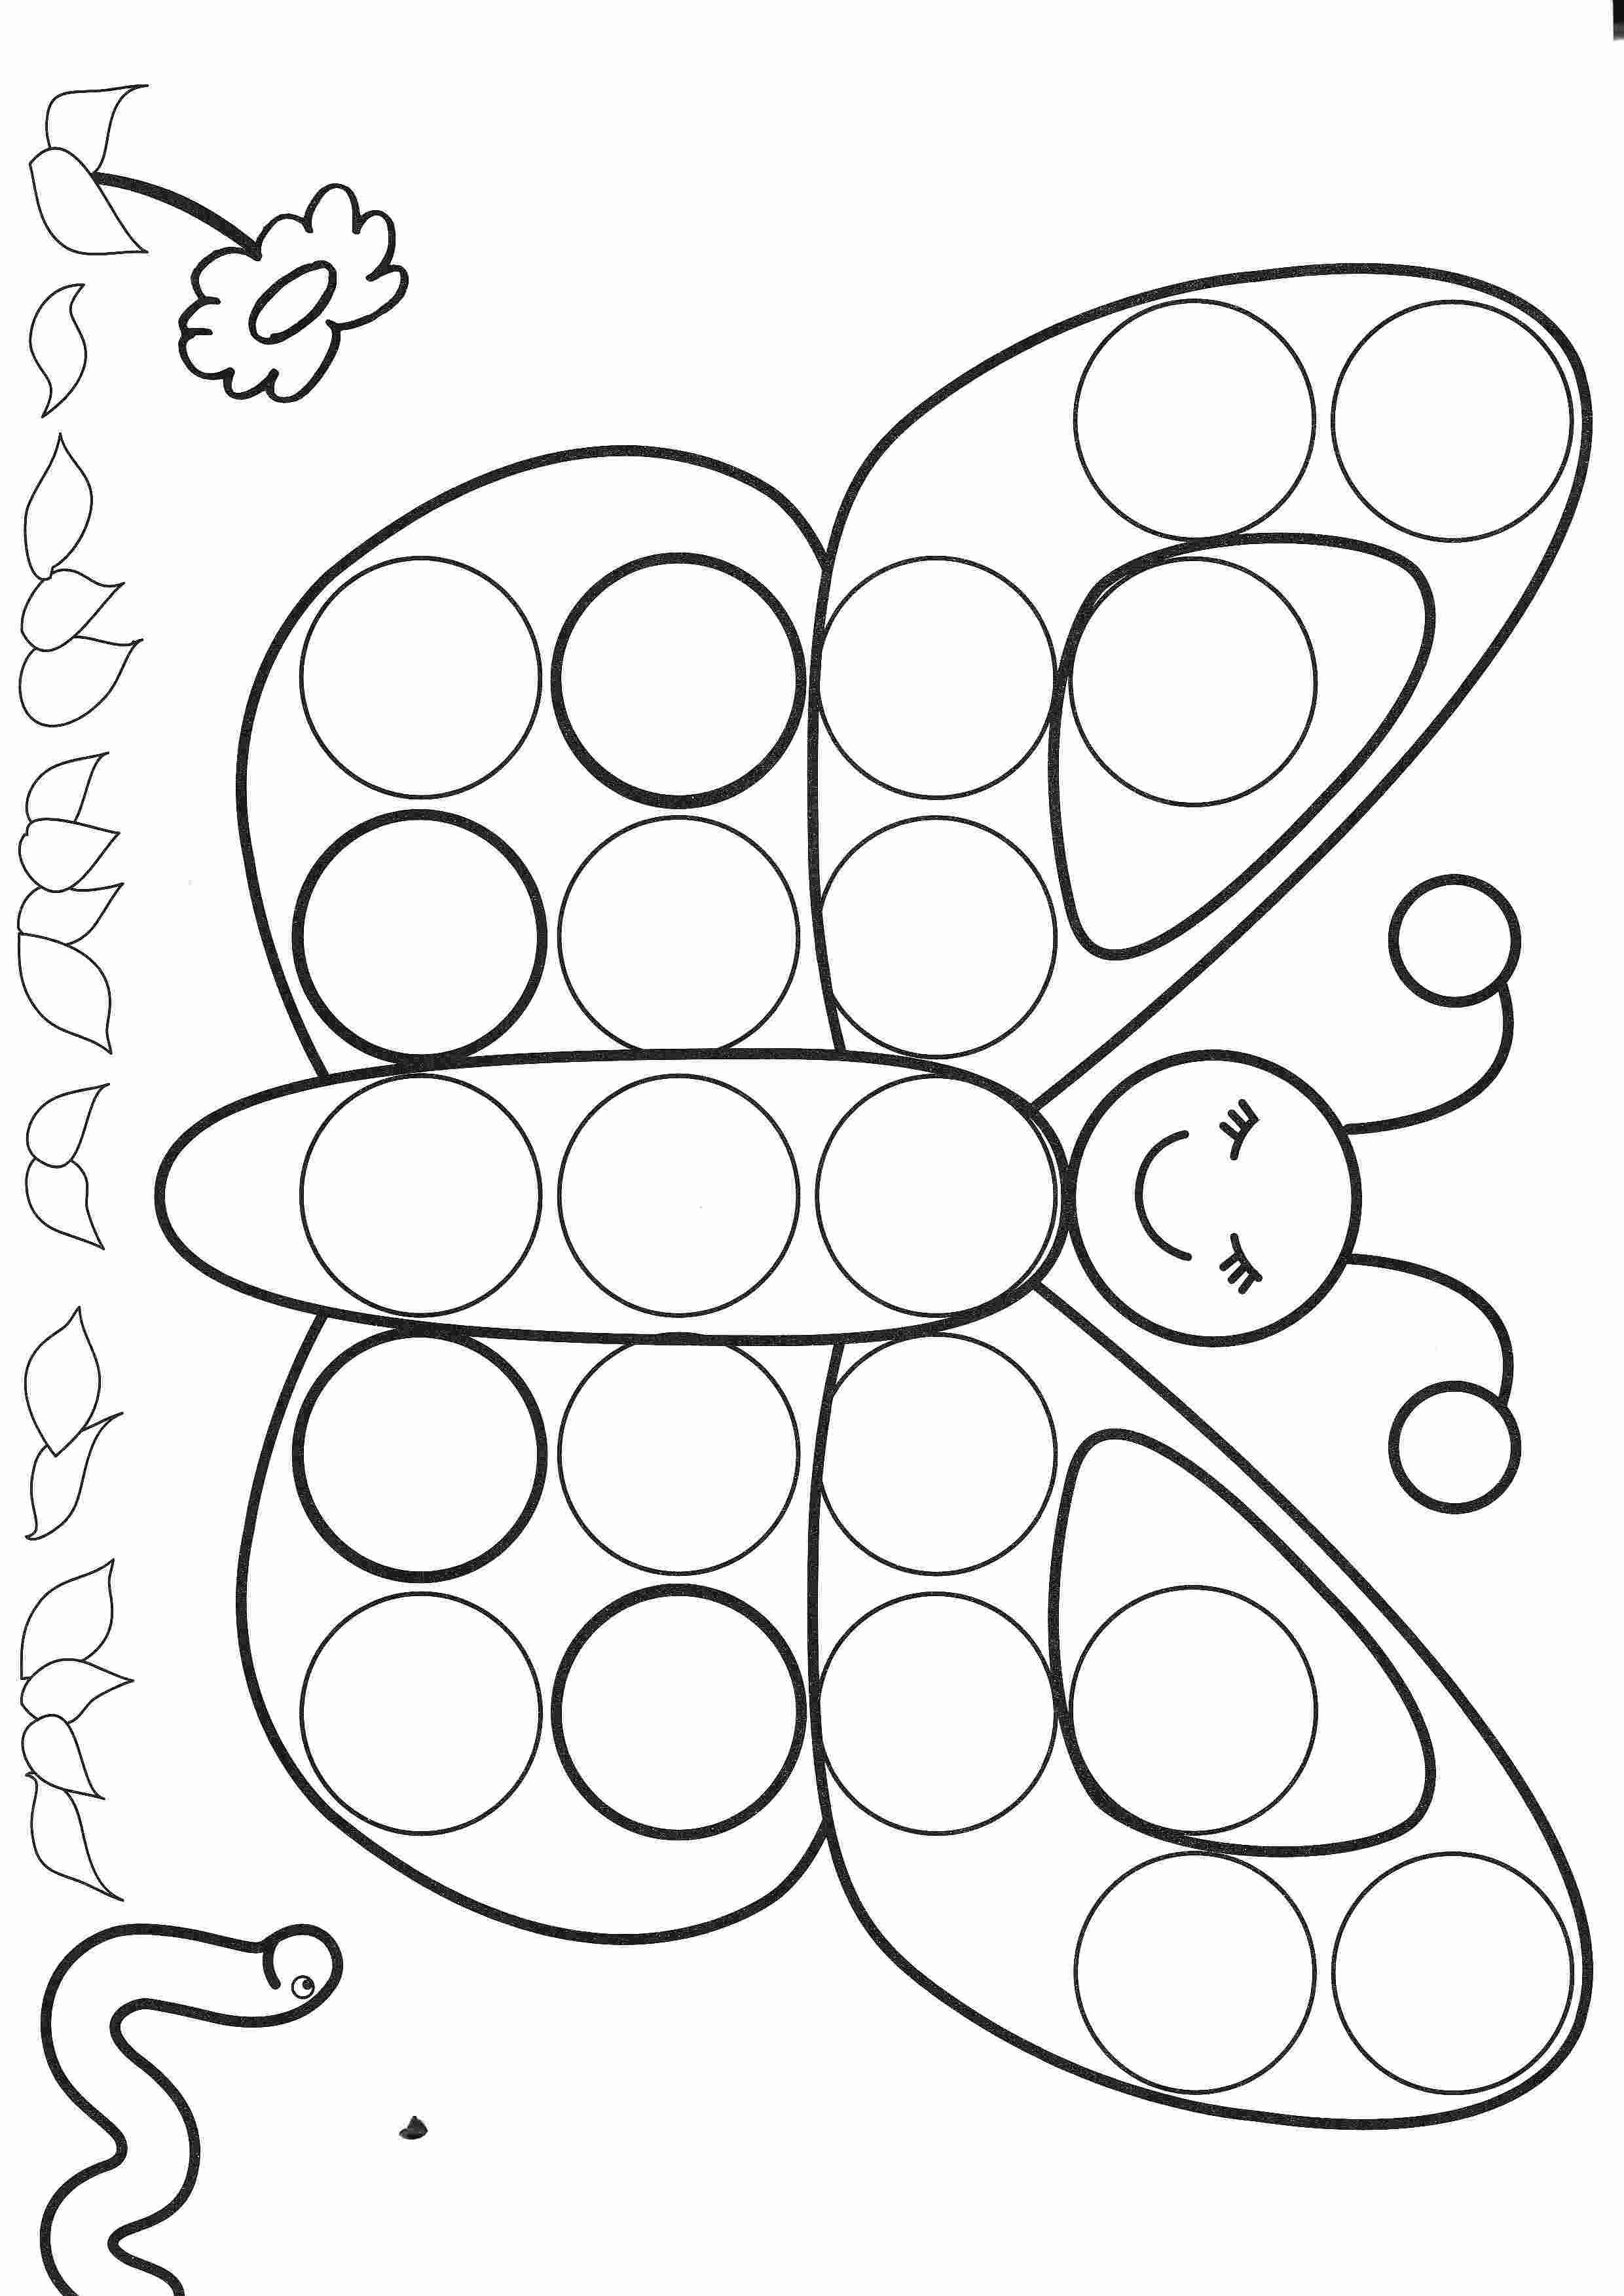 Dot Marker Coloring Pages Bingo Dot Marker Coloring Pages